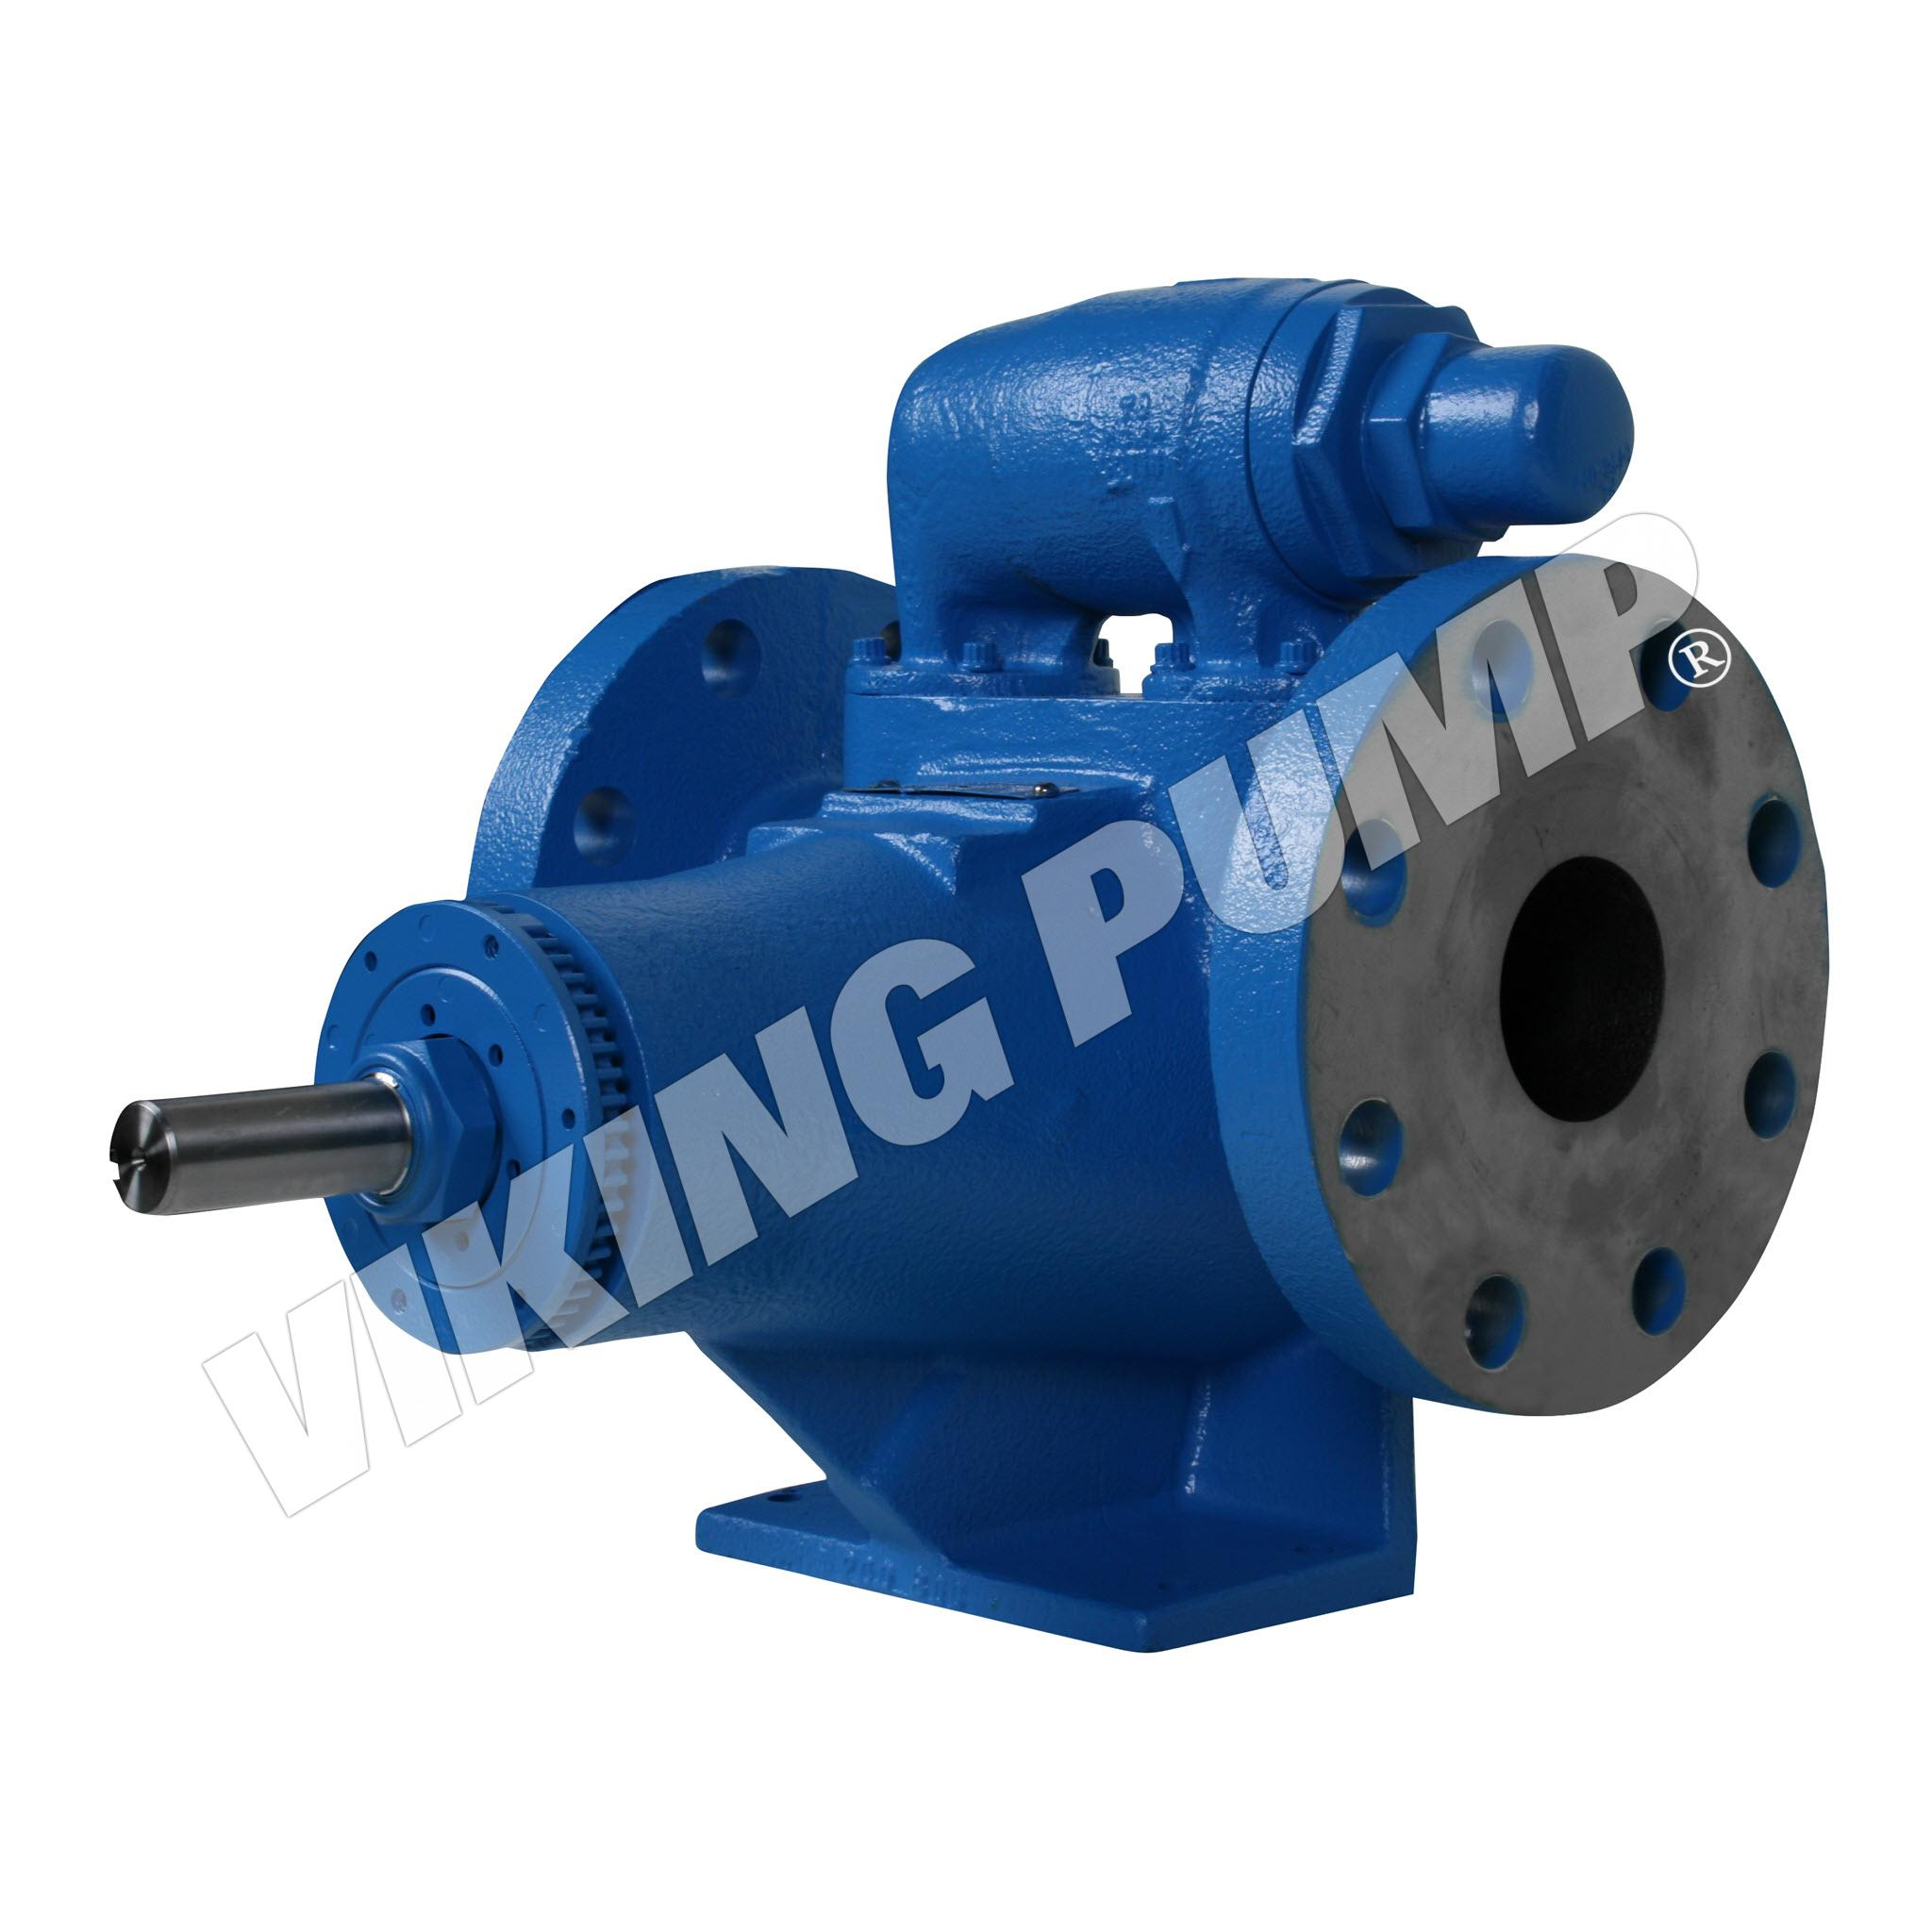 Model AK4197, Foot Mounted, Mechanical Seal, Relief Valve Pump